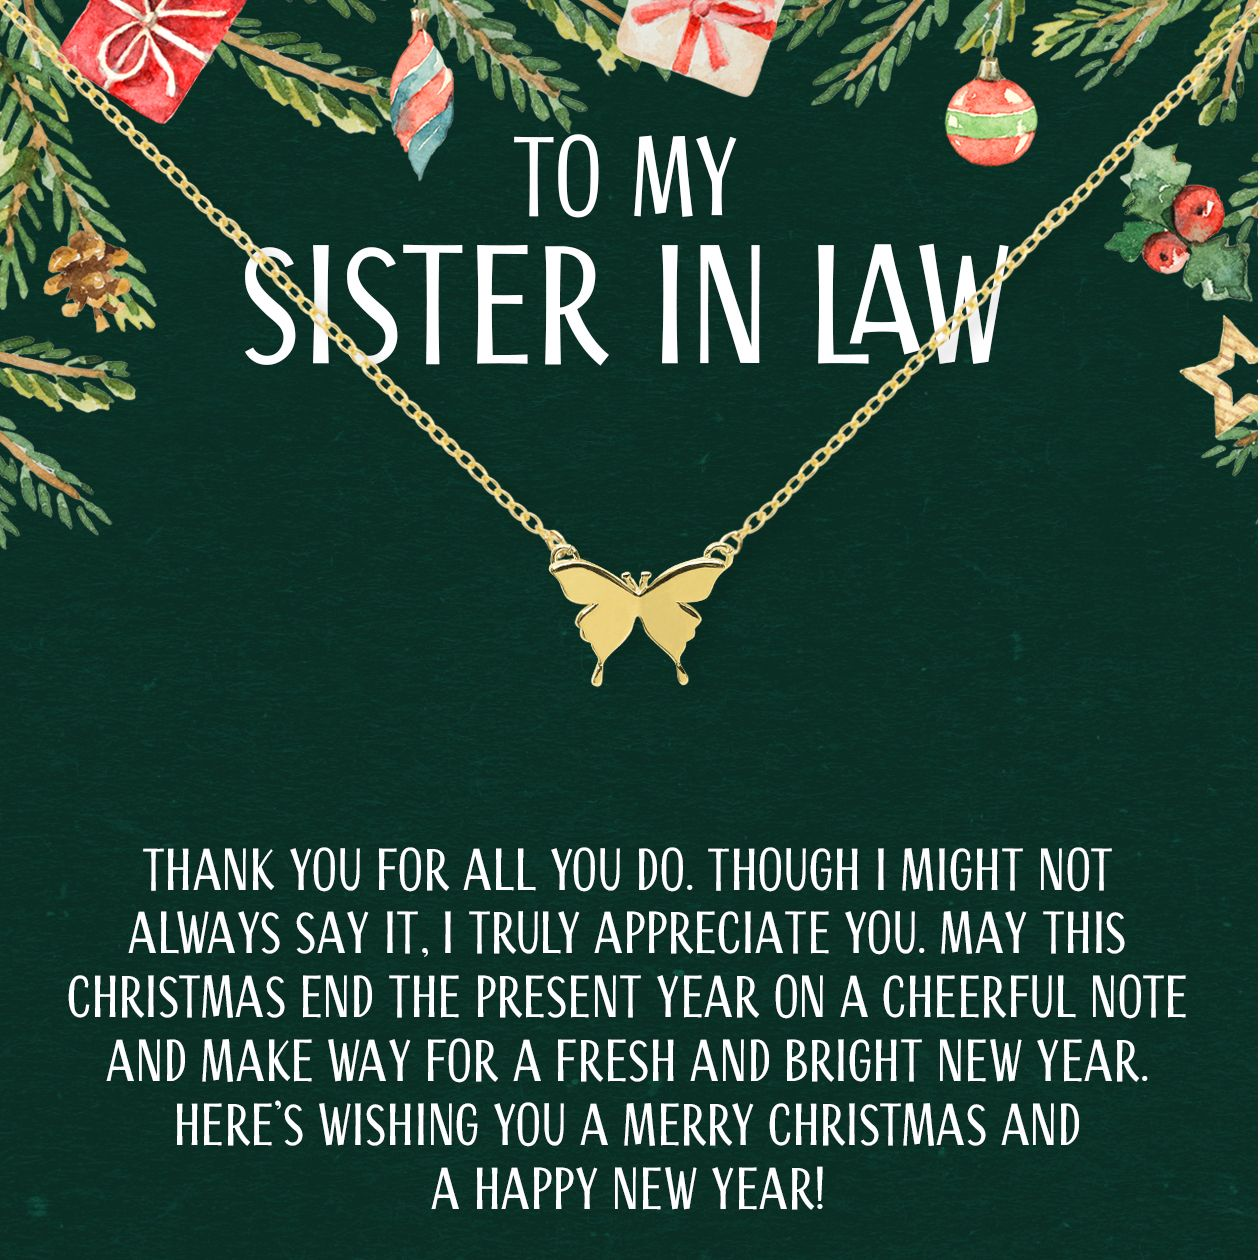 Christmas Gift For Sister In Law Butterfly Pendant Necklace Sister In Law Gifts Christmas Gifts For Sister In Law Christmas Gifts